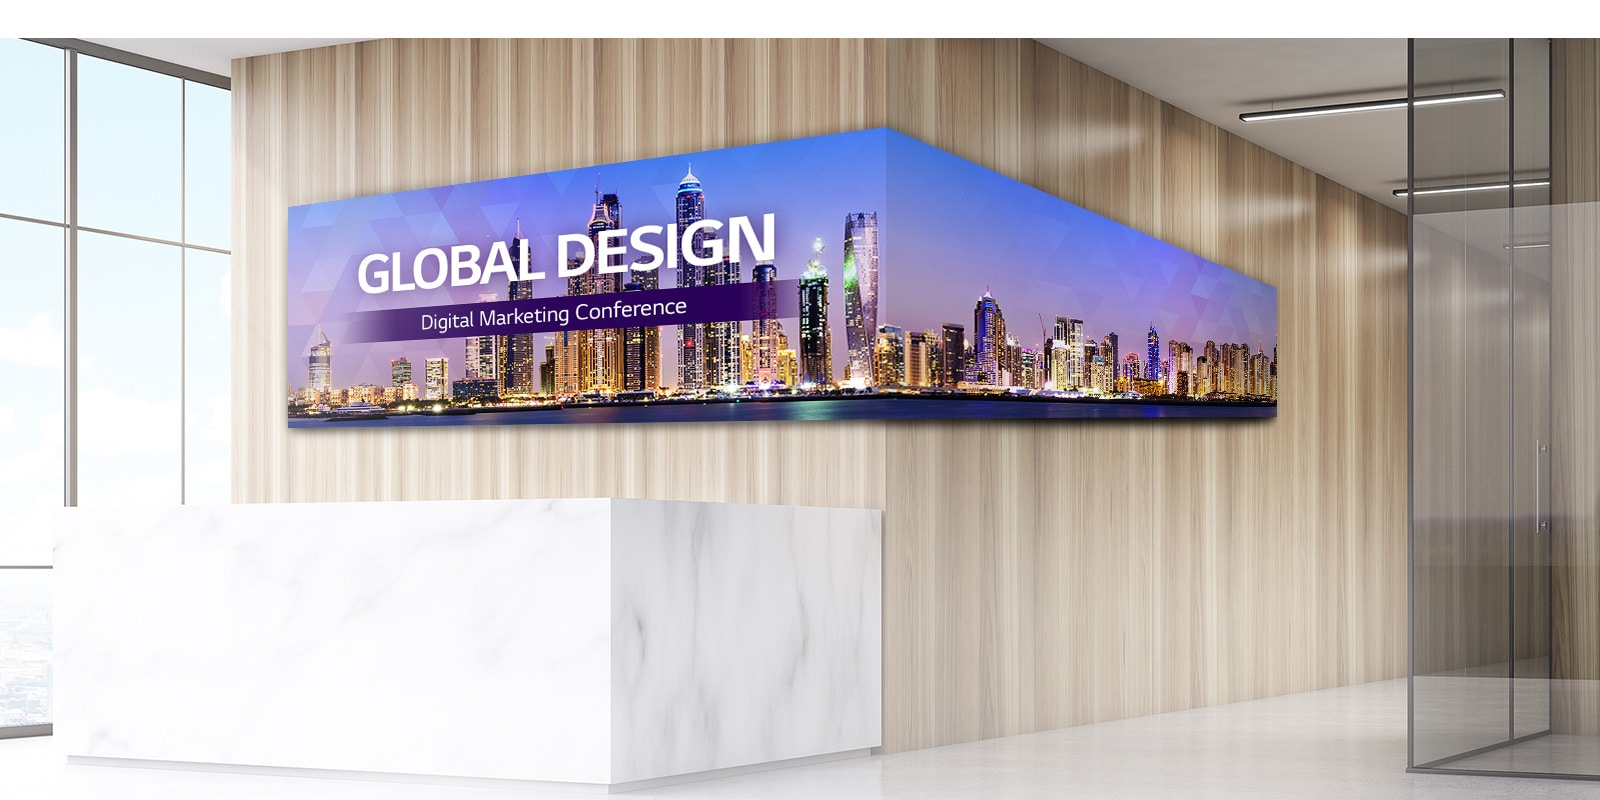 D01_ID_LED-Signage_Indoor_hero_01_M01_1520989557020